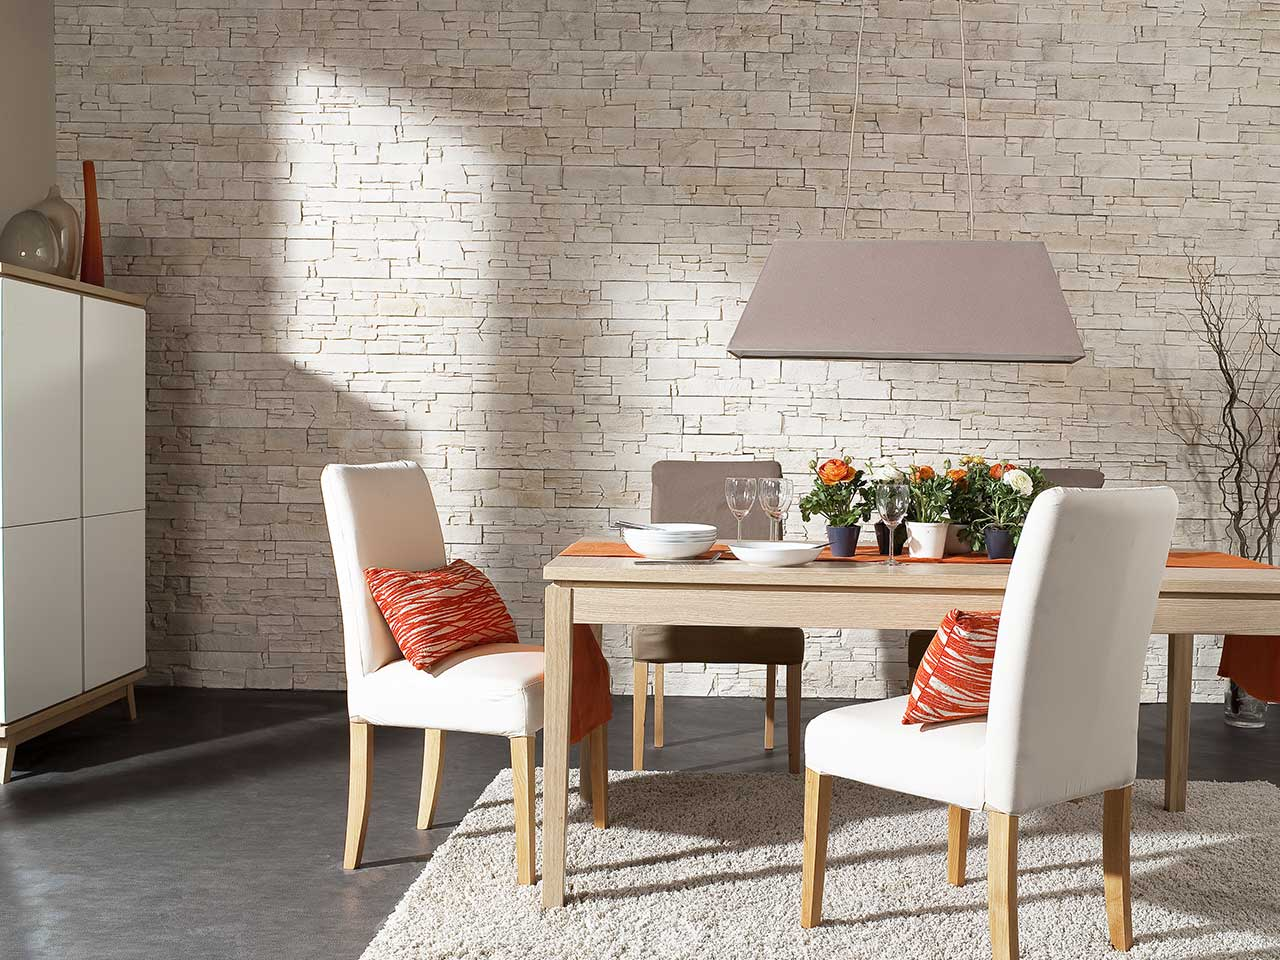 Yellowstone beige int iperceramica for Idee per interni